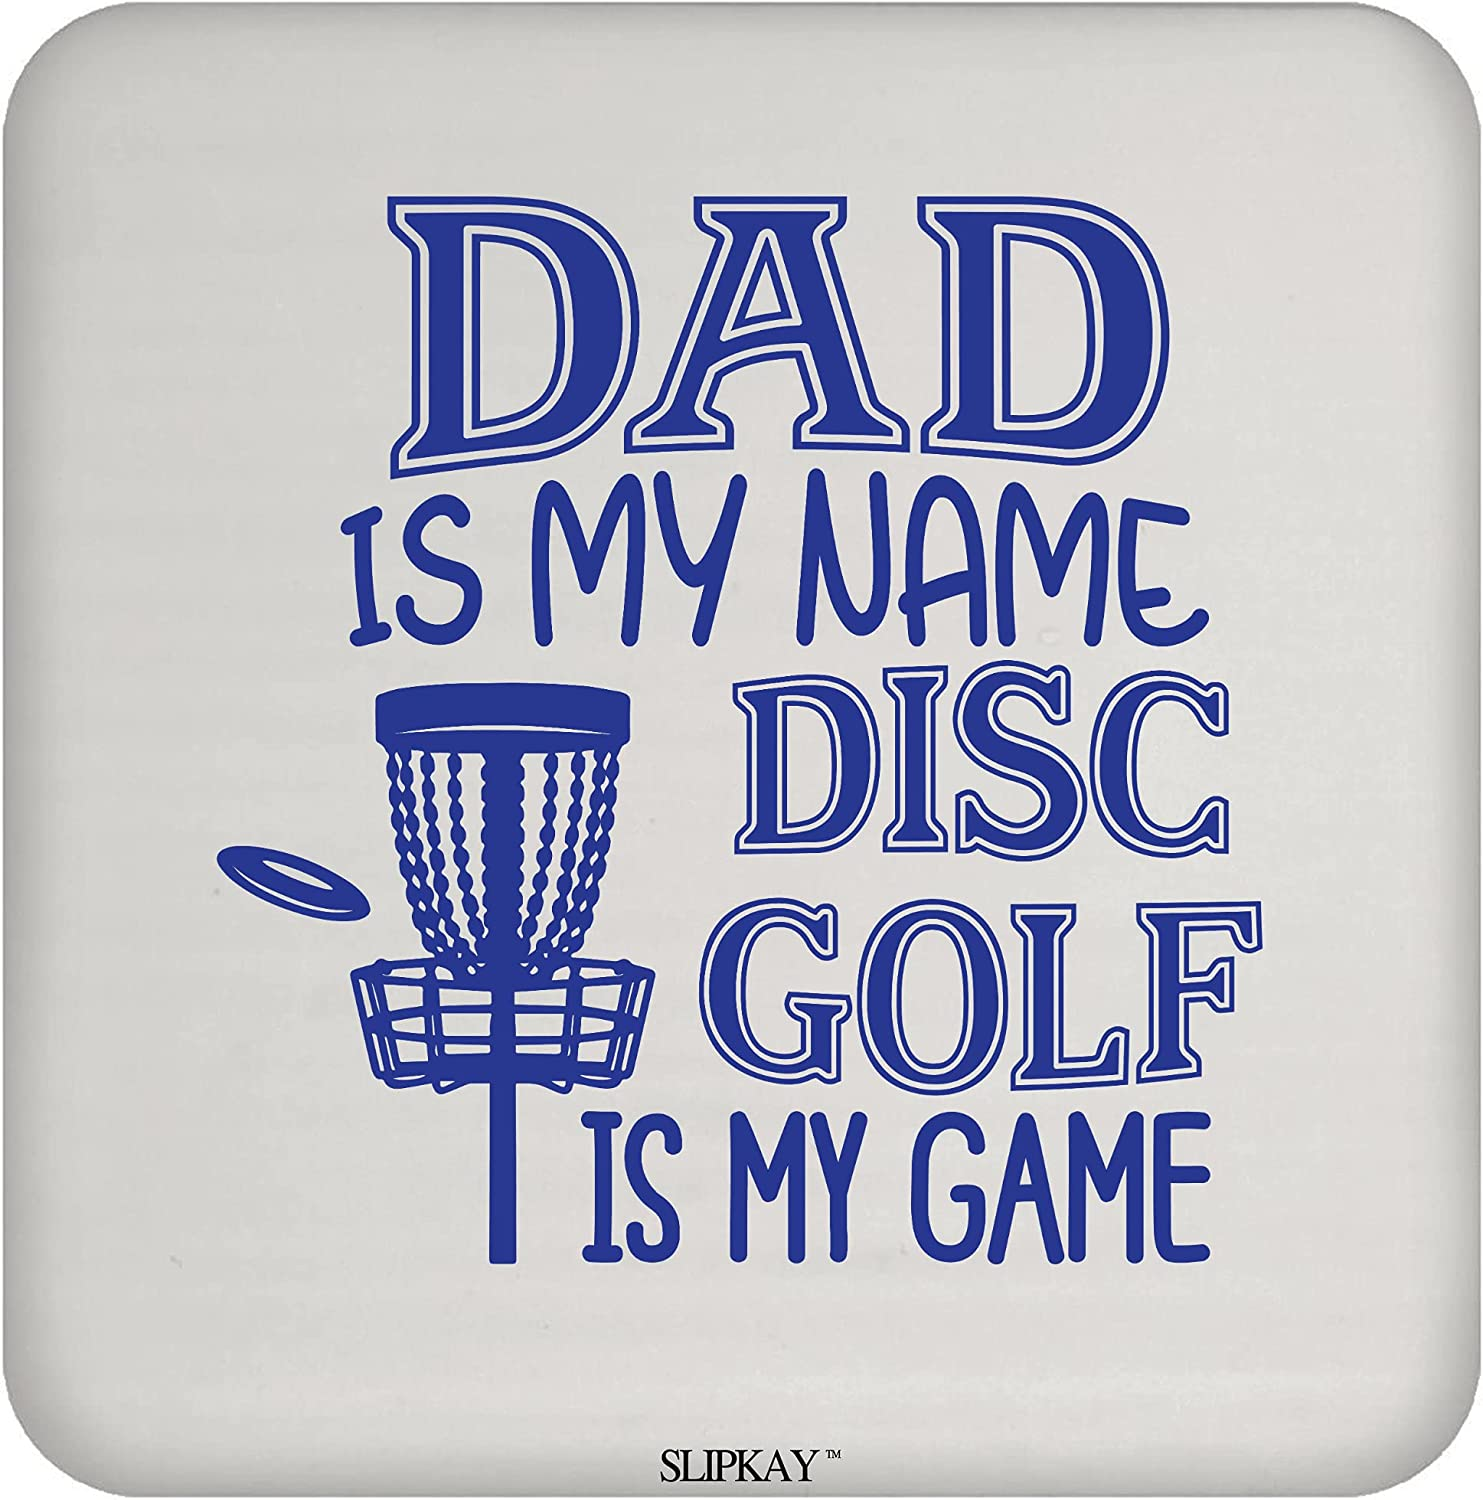 Dad Quantity limited Deluxe is My Name Golf Coaster Disc Game